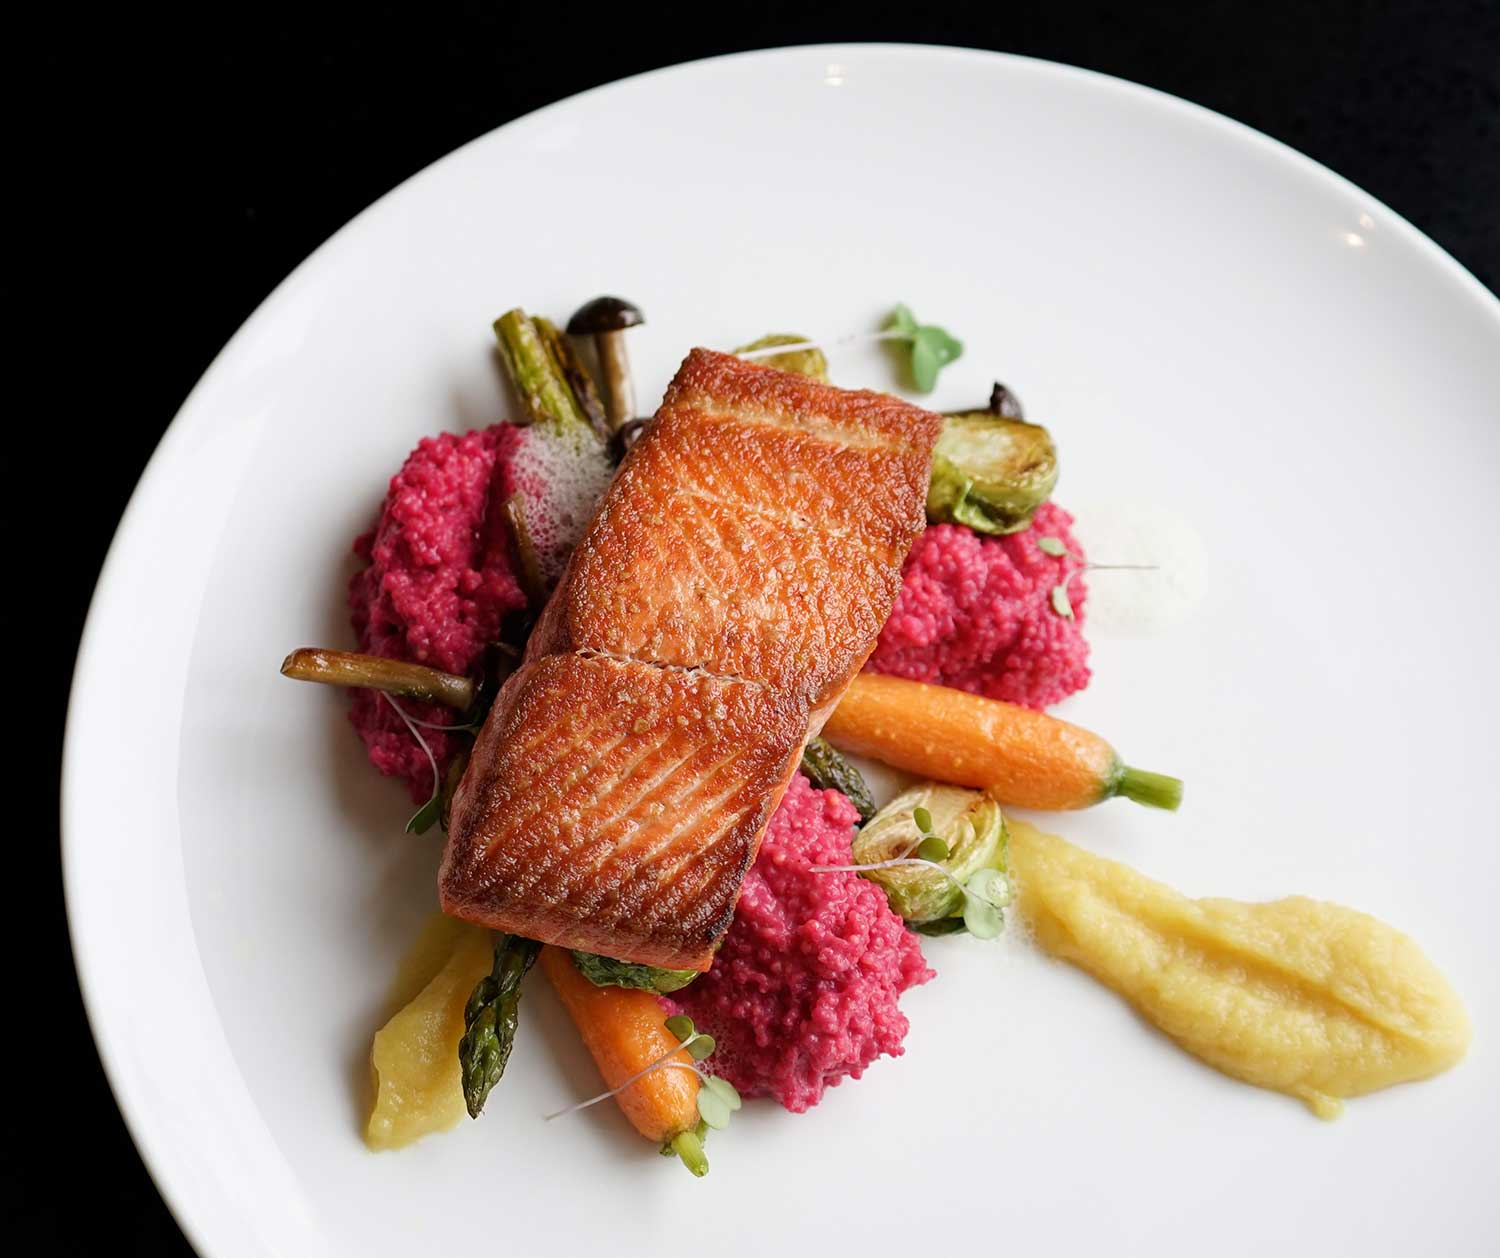 APRON-1---WILD-PACIFIC-SALMON--Millet,-beet-puree,-roasted-brussels-sprouts,-varietal-(6-of-7).jpg